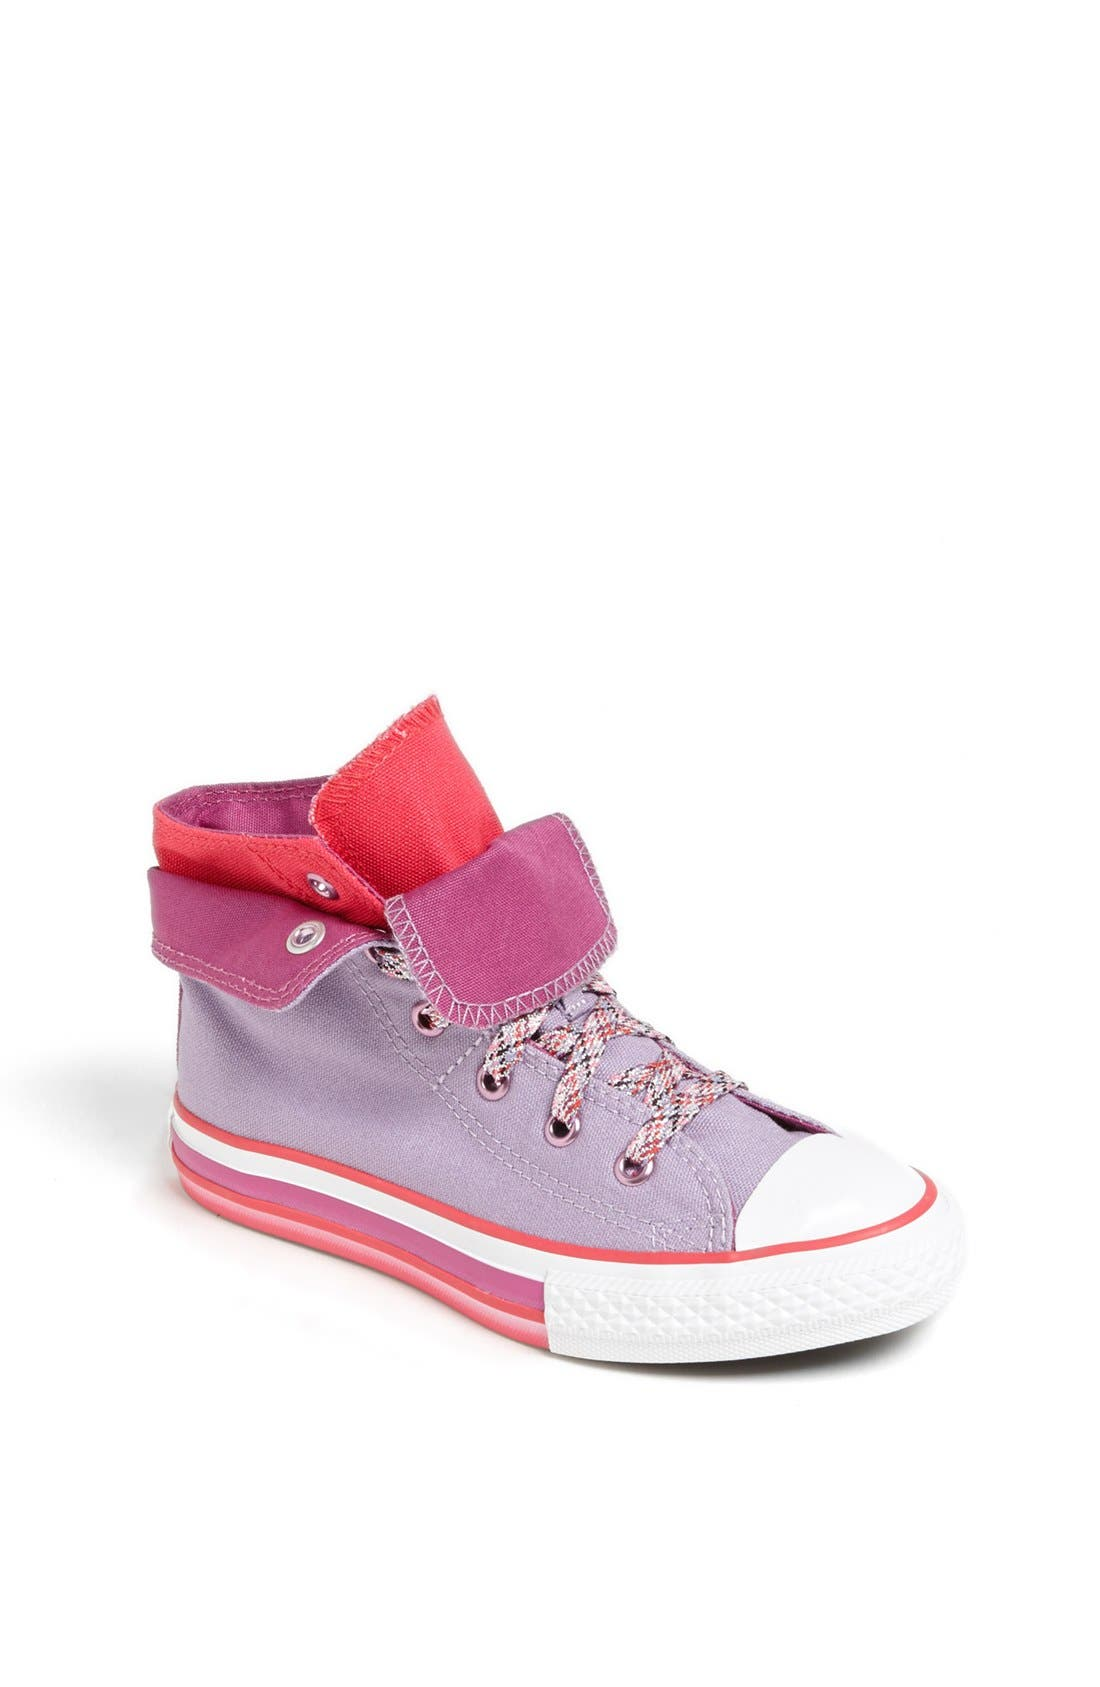 Alternate Image 1 Selected - Converse Chuck Taylor® All Star® 'Two Fold' Sneaker (Toddler, Little Kid & Big Kid)